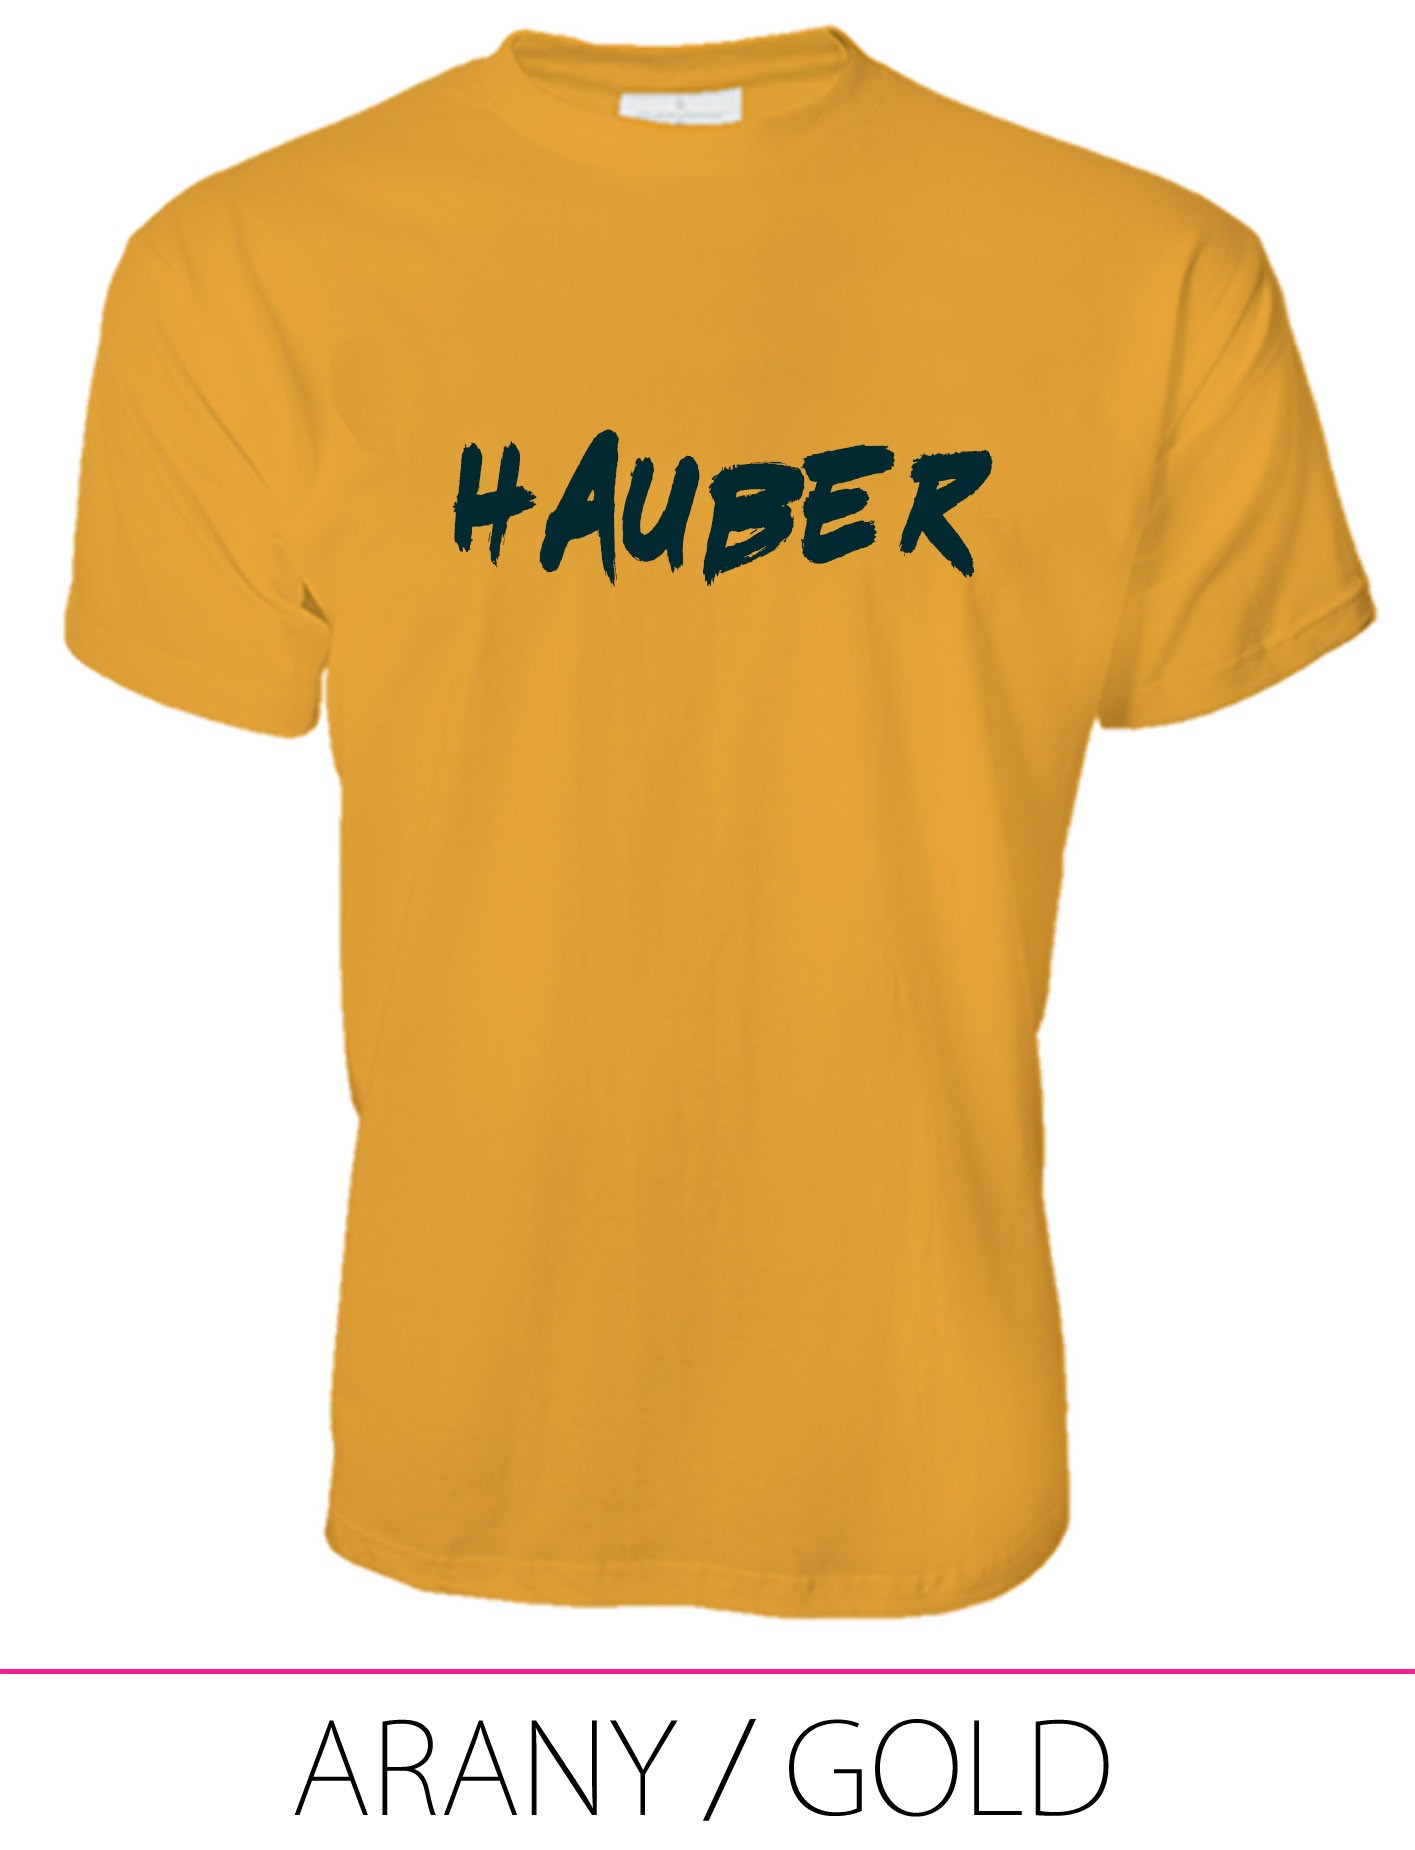 MEN PREMIUM CREW NECK T-SHIRT HAUBER GOLD